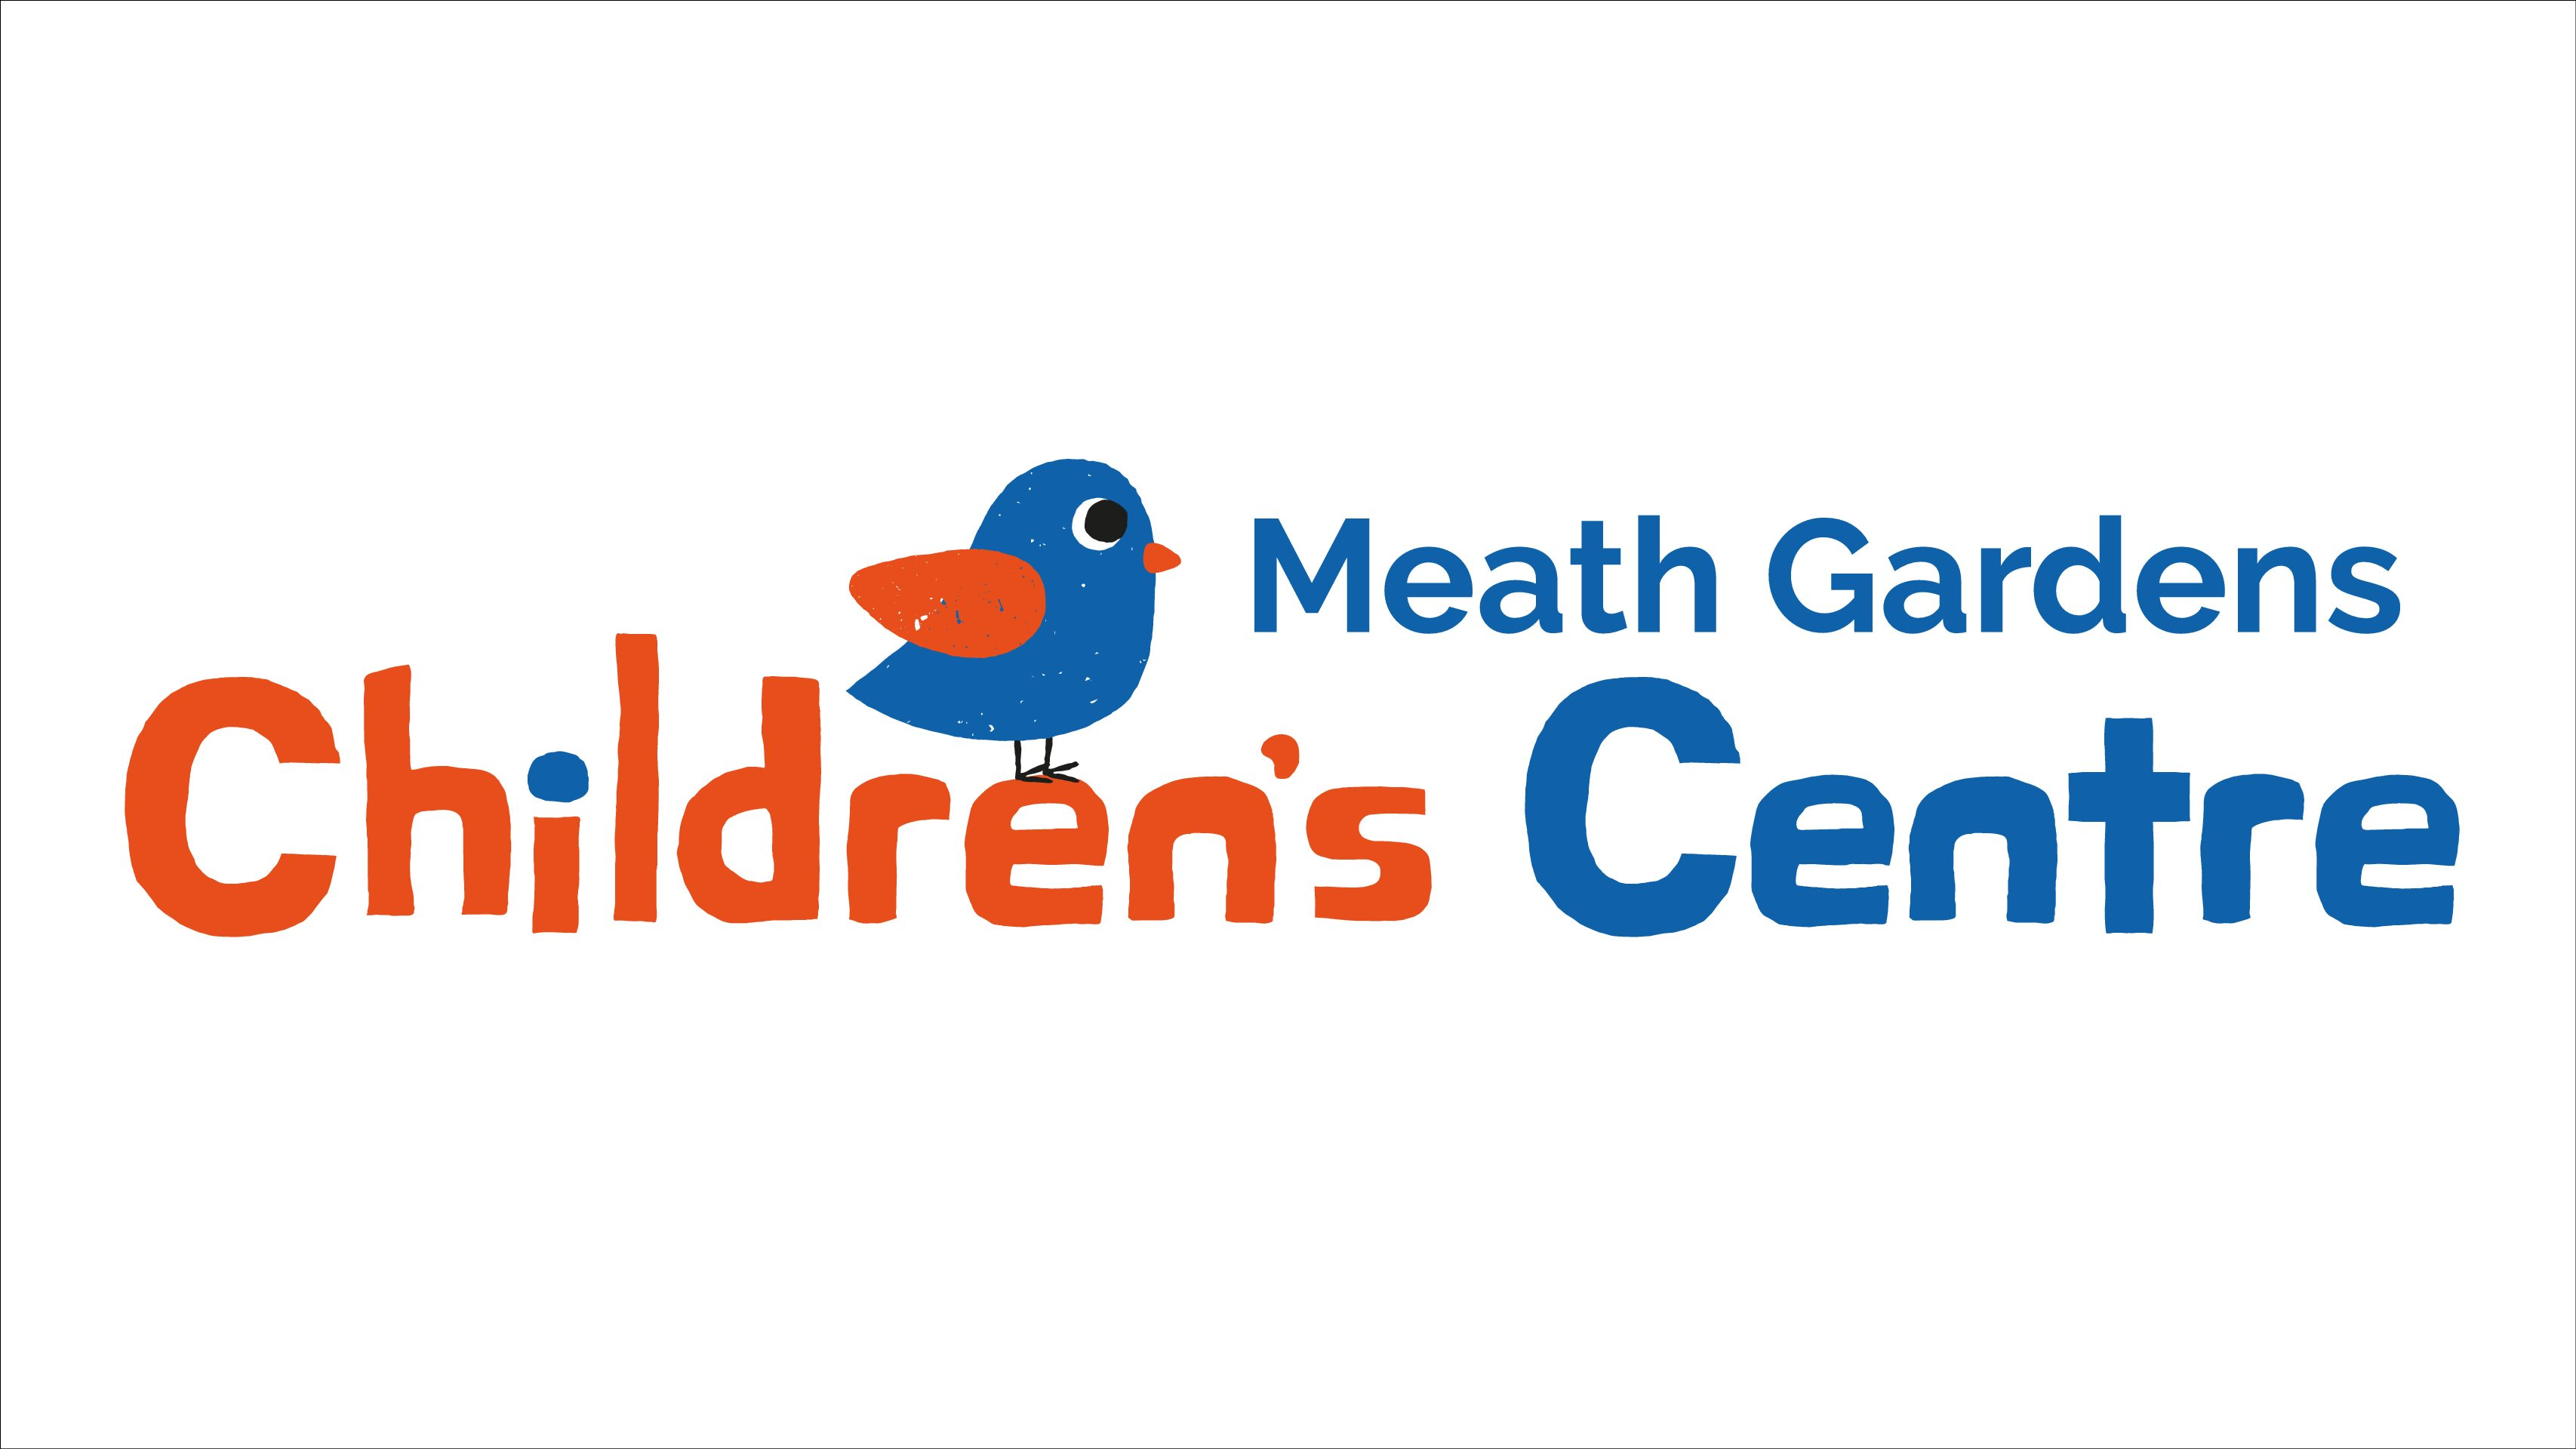 Meath Gardens Children's Centre Summer Activities